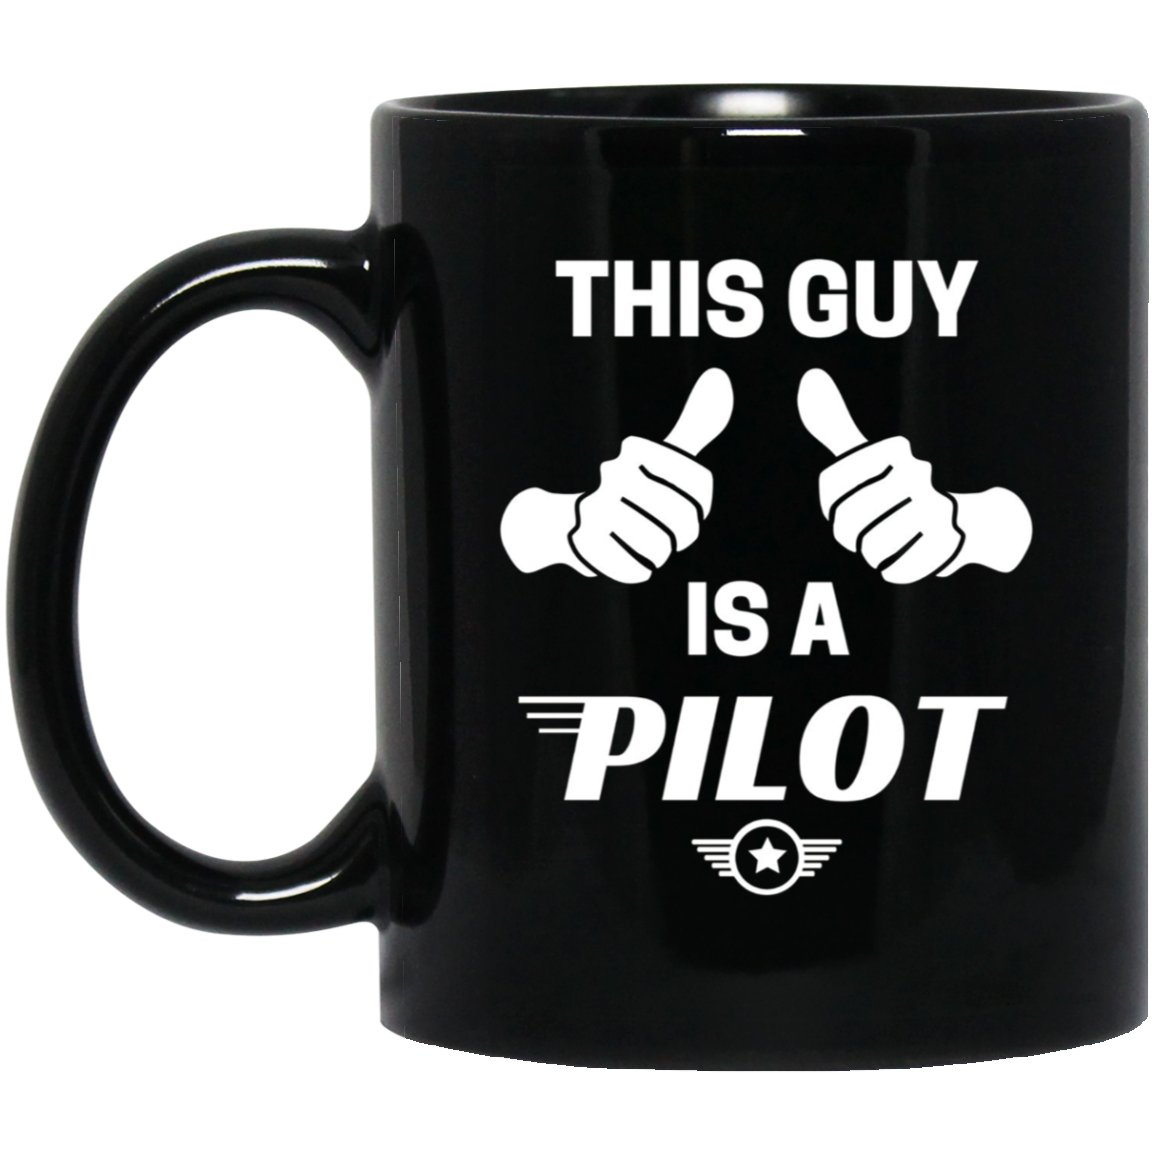 Mens This Guy Is A Pilot Funny Aviator Flight Black  Mug Black Ceramic 11oz Coffee Tea Cup